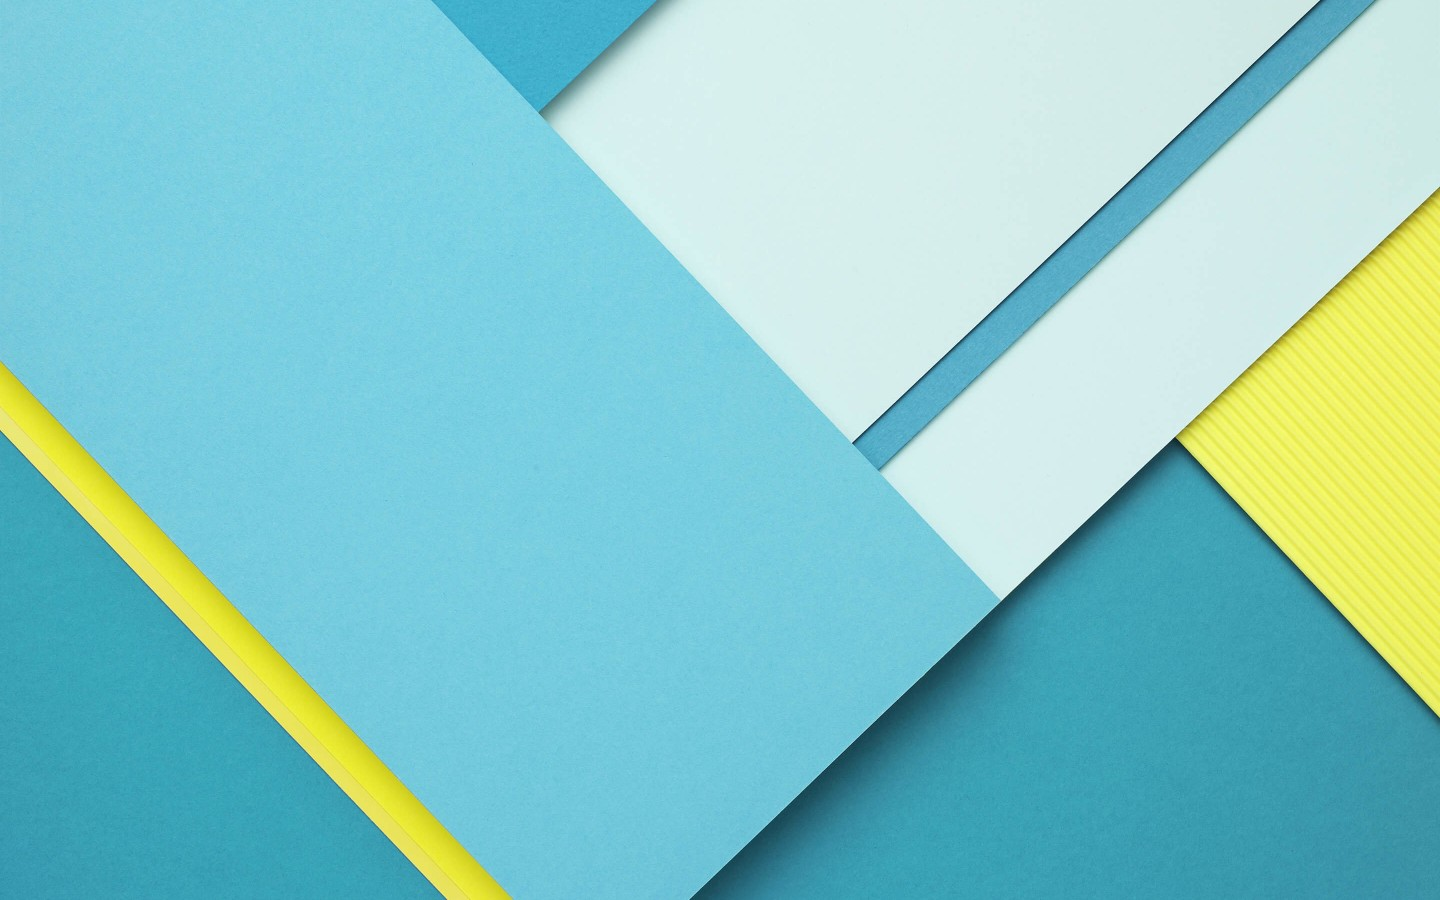 Google Material Design Wallpaper for Desktop 1440x900